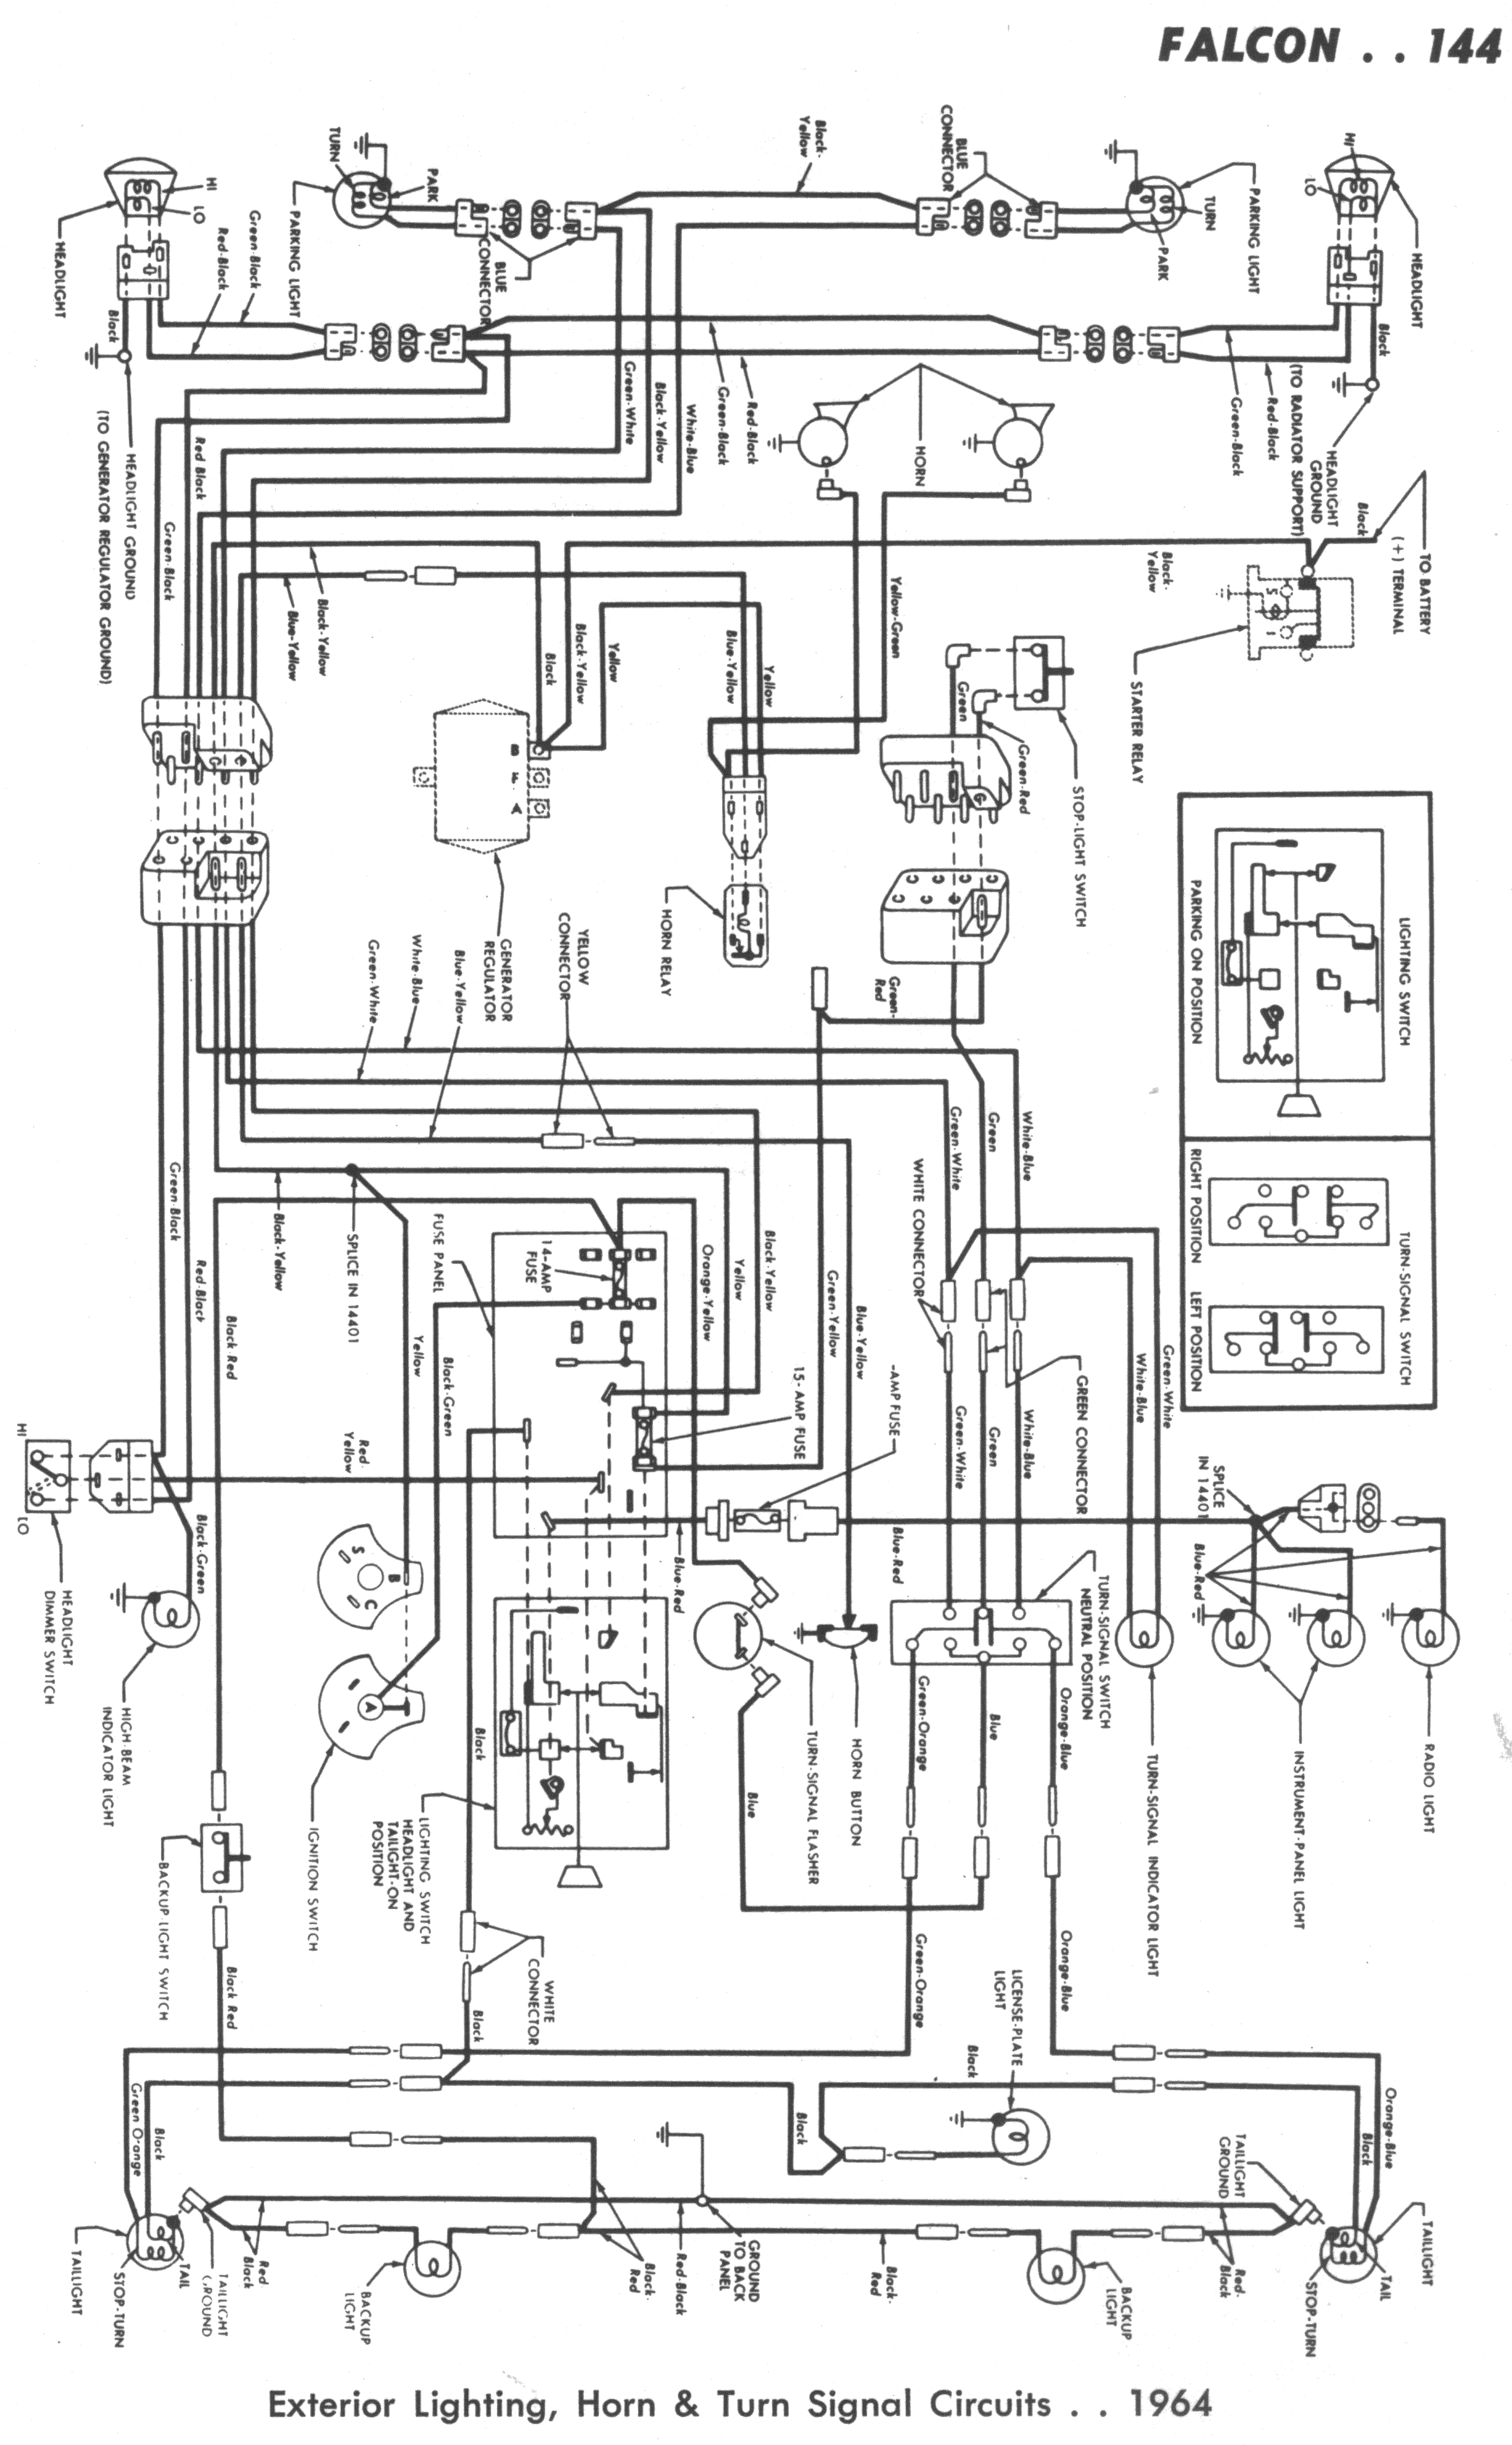 Wiring 61 62 144Ra falcon wiring diagrams 1964 ford falcon wiring diagram at fashall.co